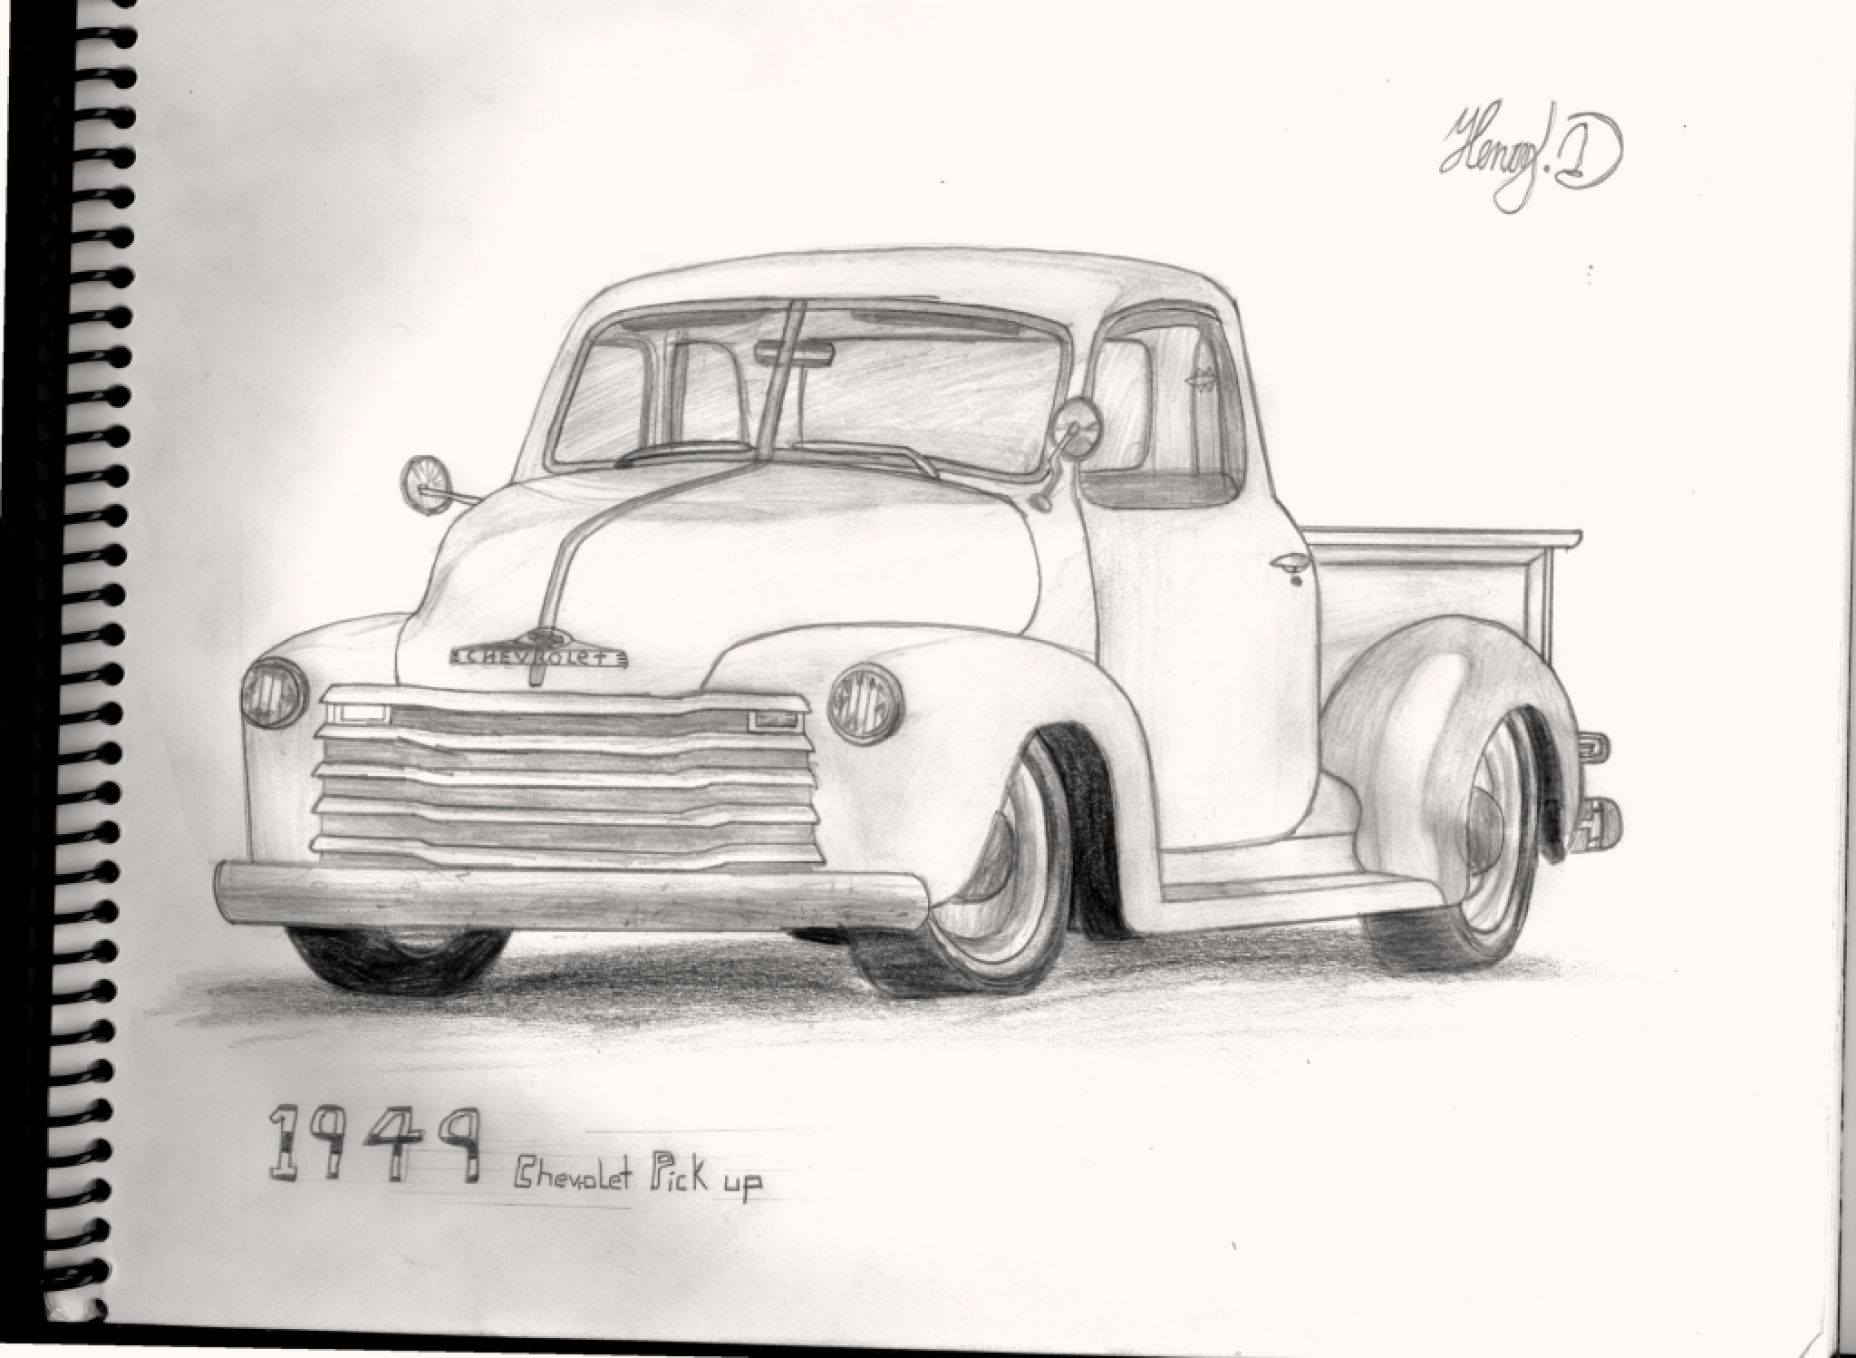 Mi dibujo de Chevrolet pick up (un clasico)